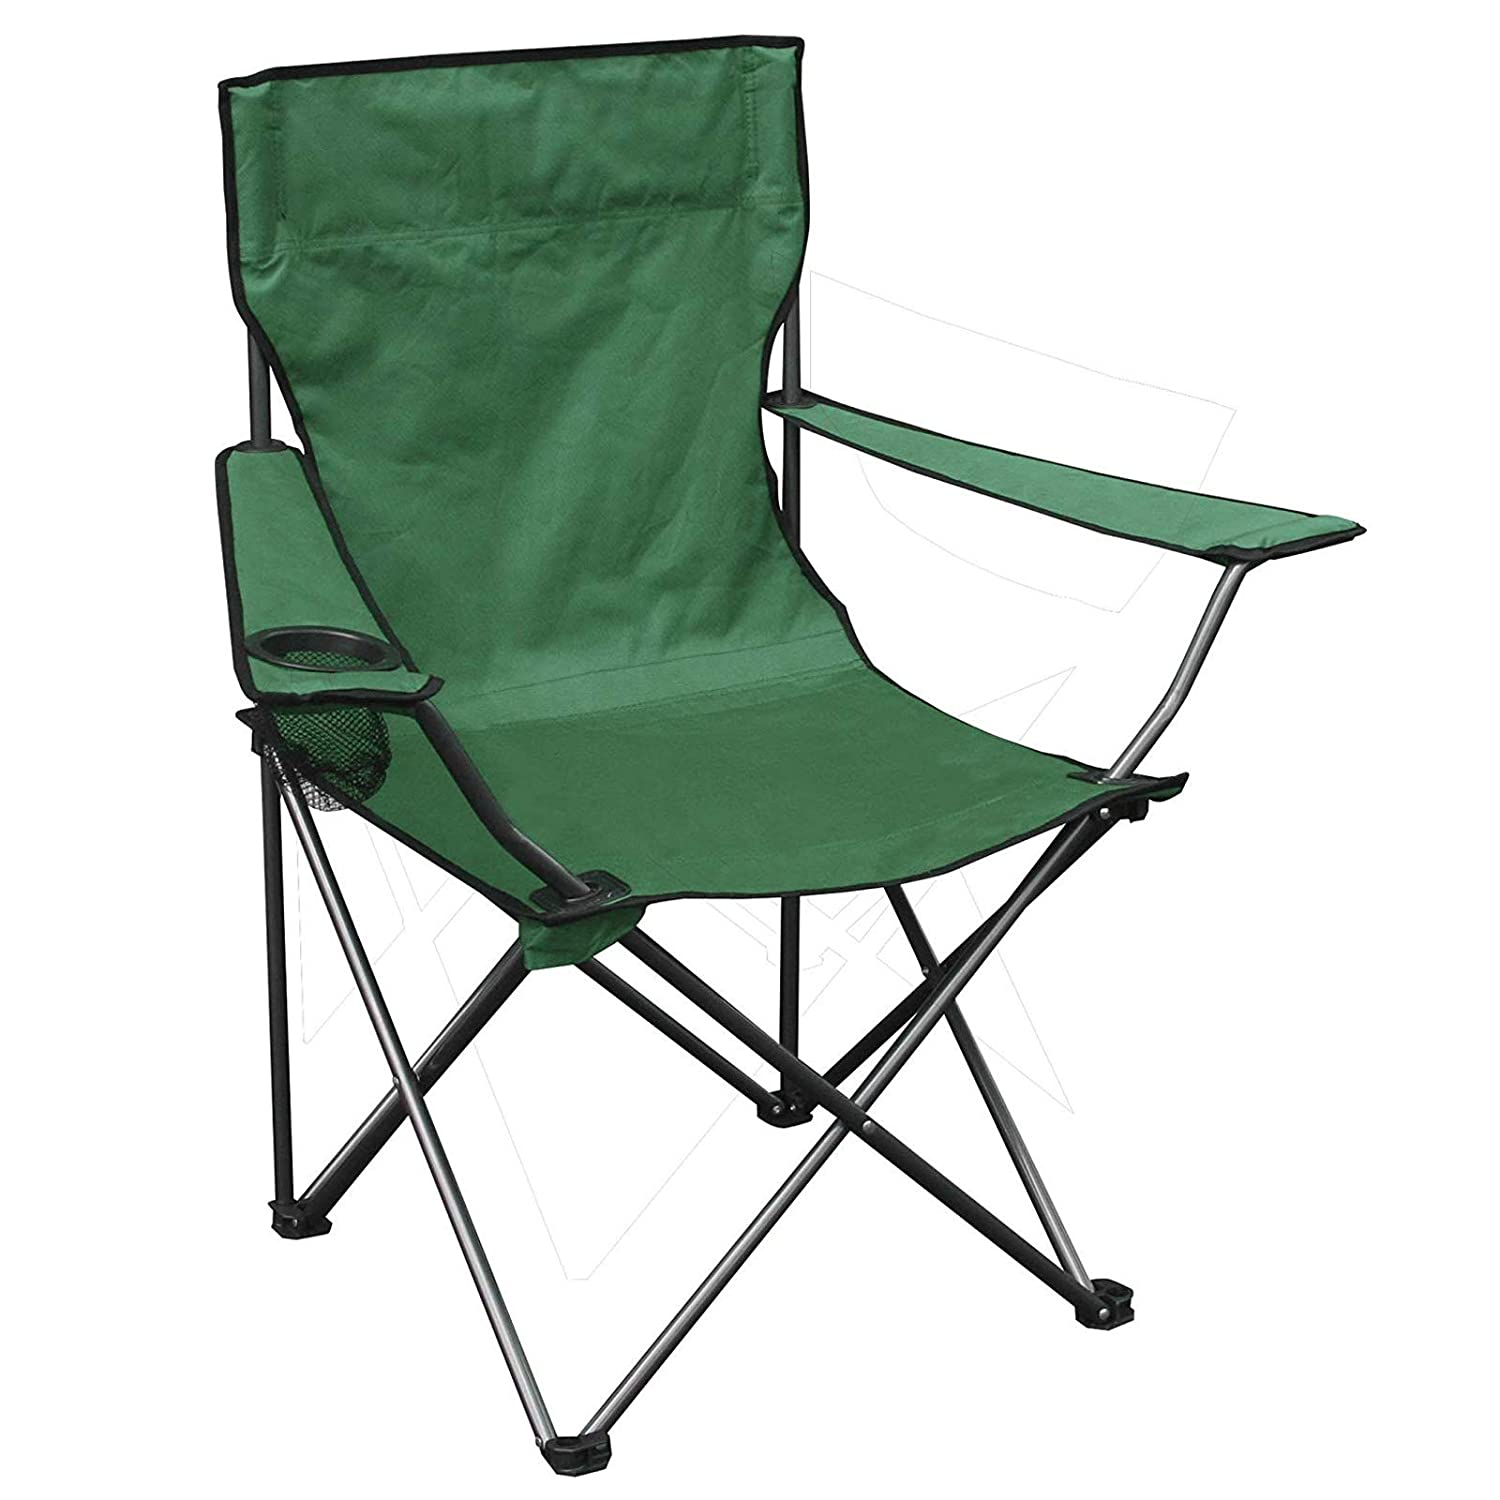 AMOS Folding Camping Chair with Cup Holder and Carry Bag Lightweight Portable Seat for Trail Outdoor Leisure Fishing Festival Beach Travel